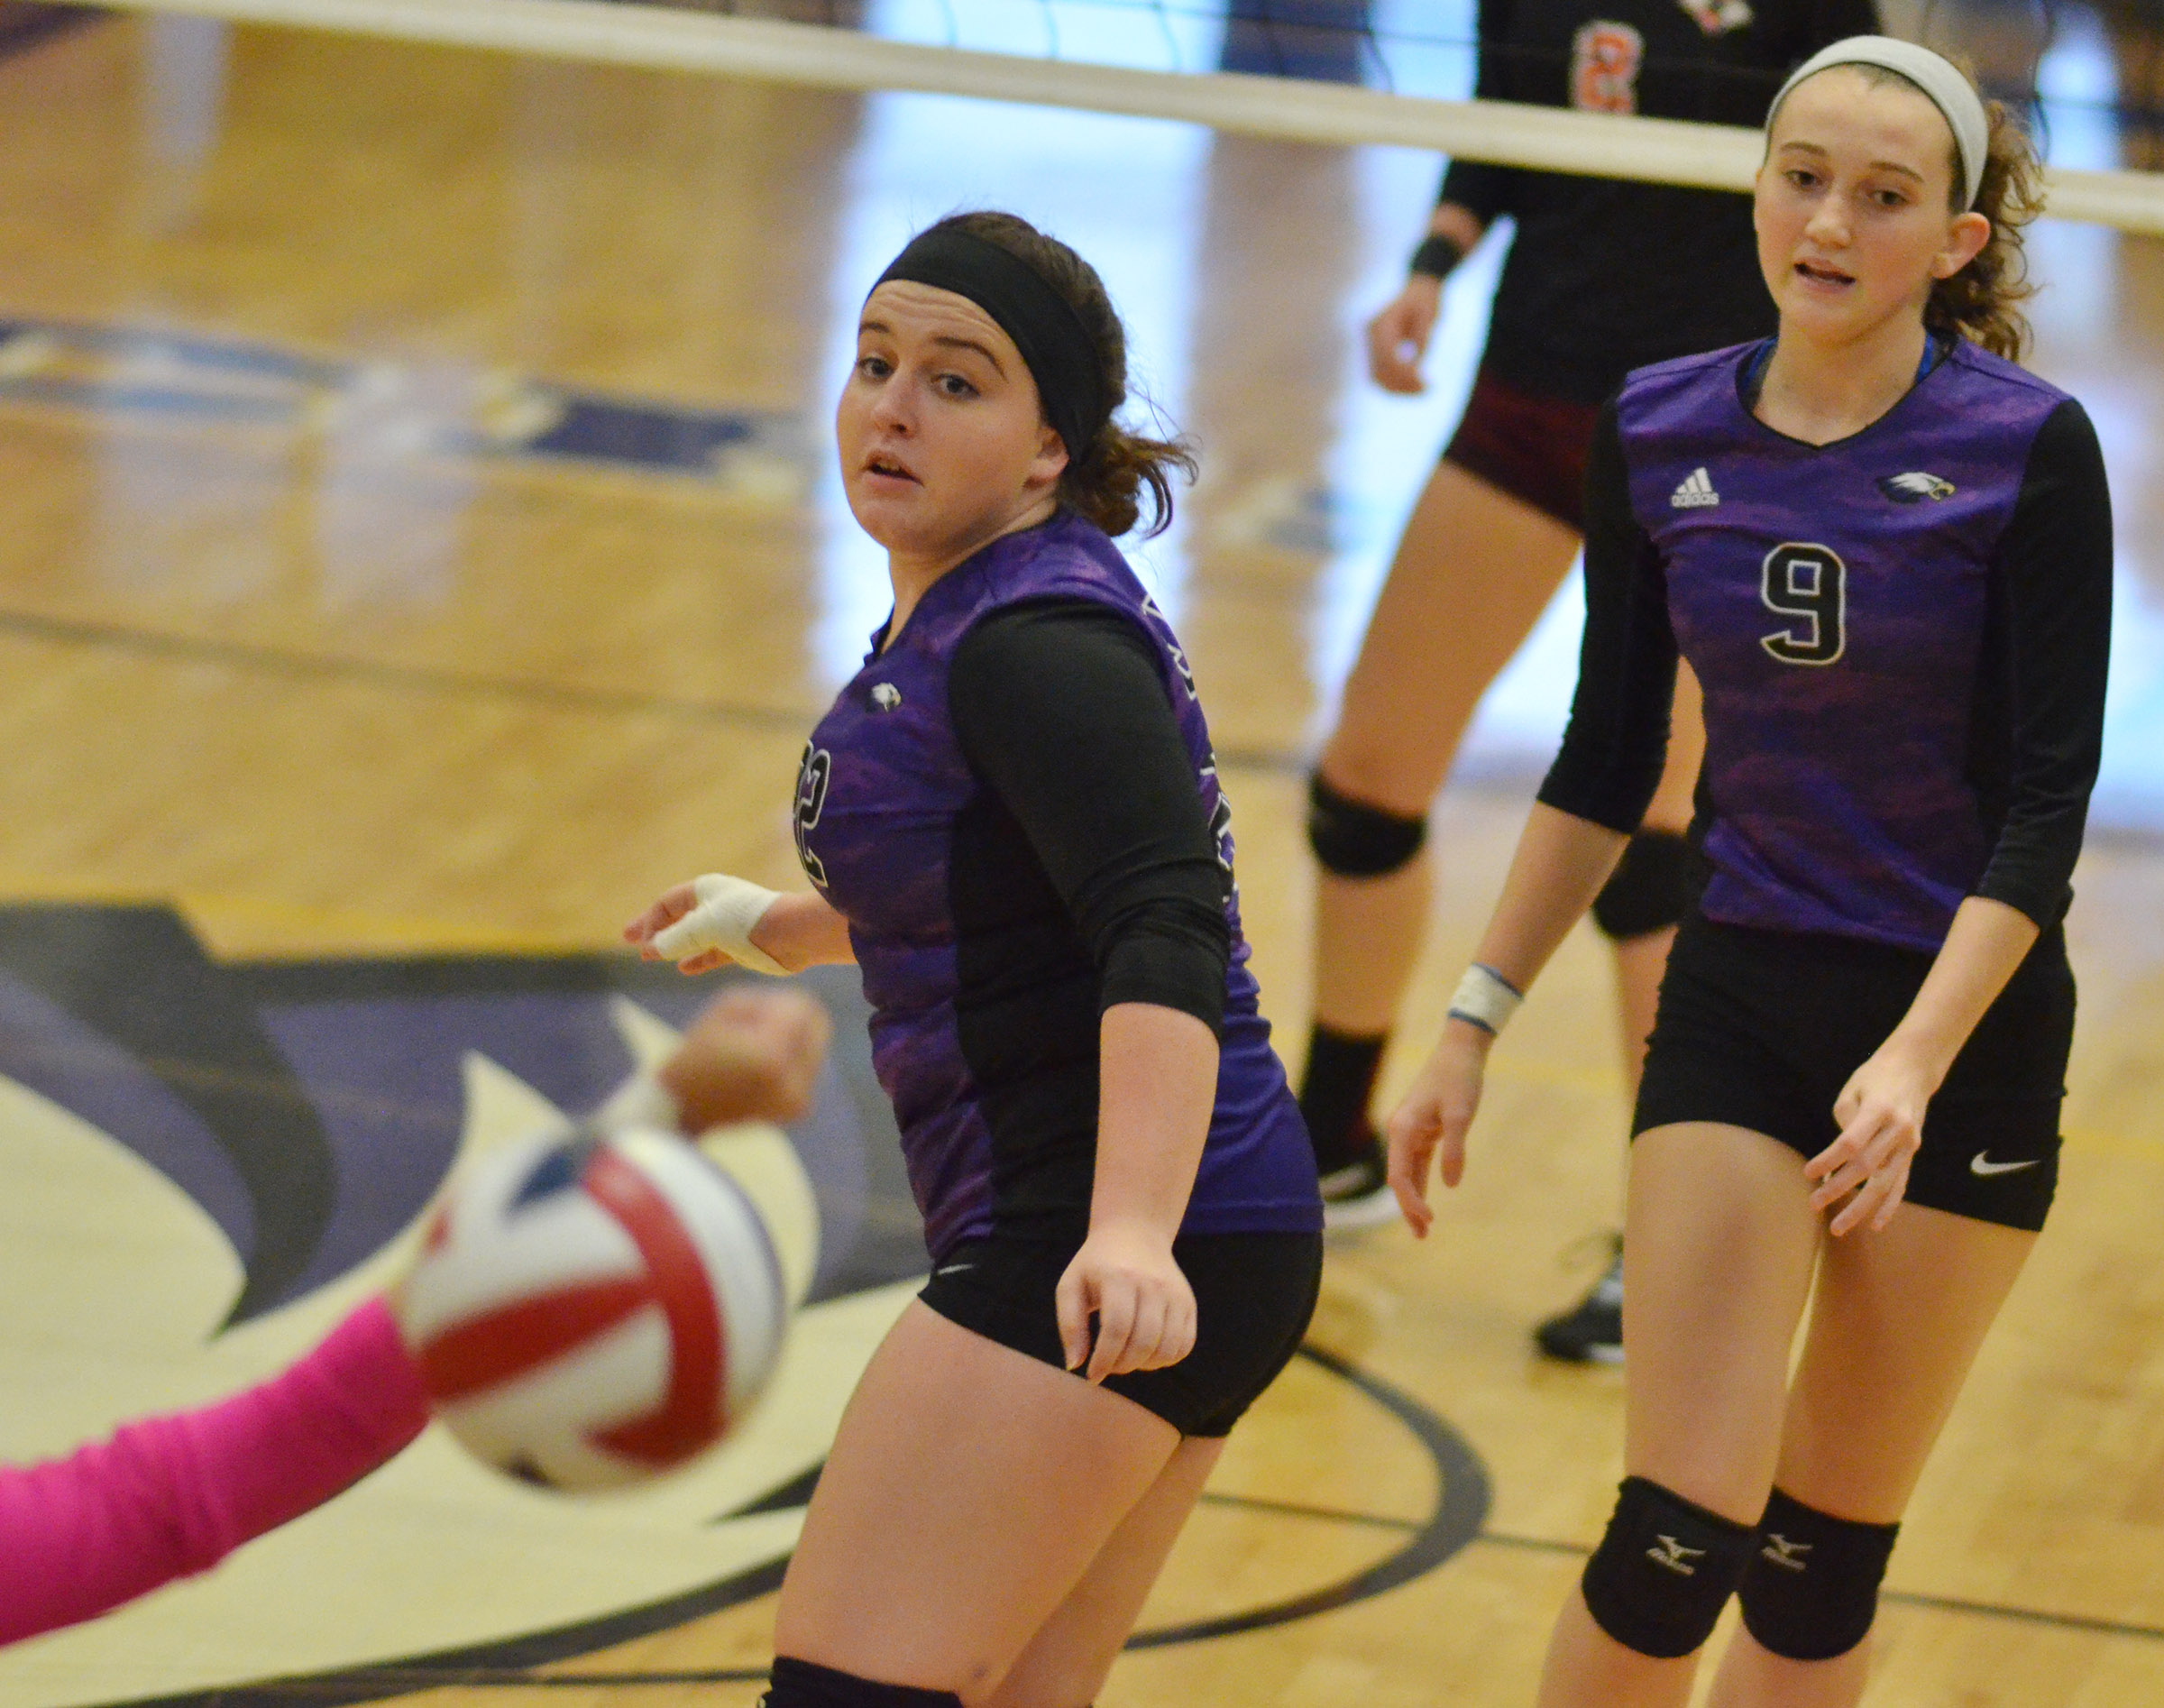 CHS senior Caitlin Bright, at left, and junior Salena Ritchie watch the ball.